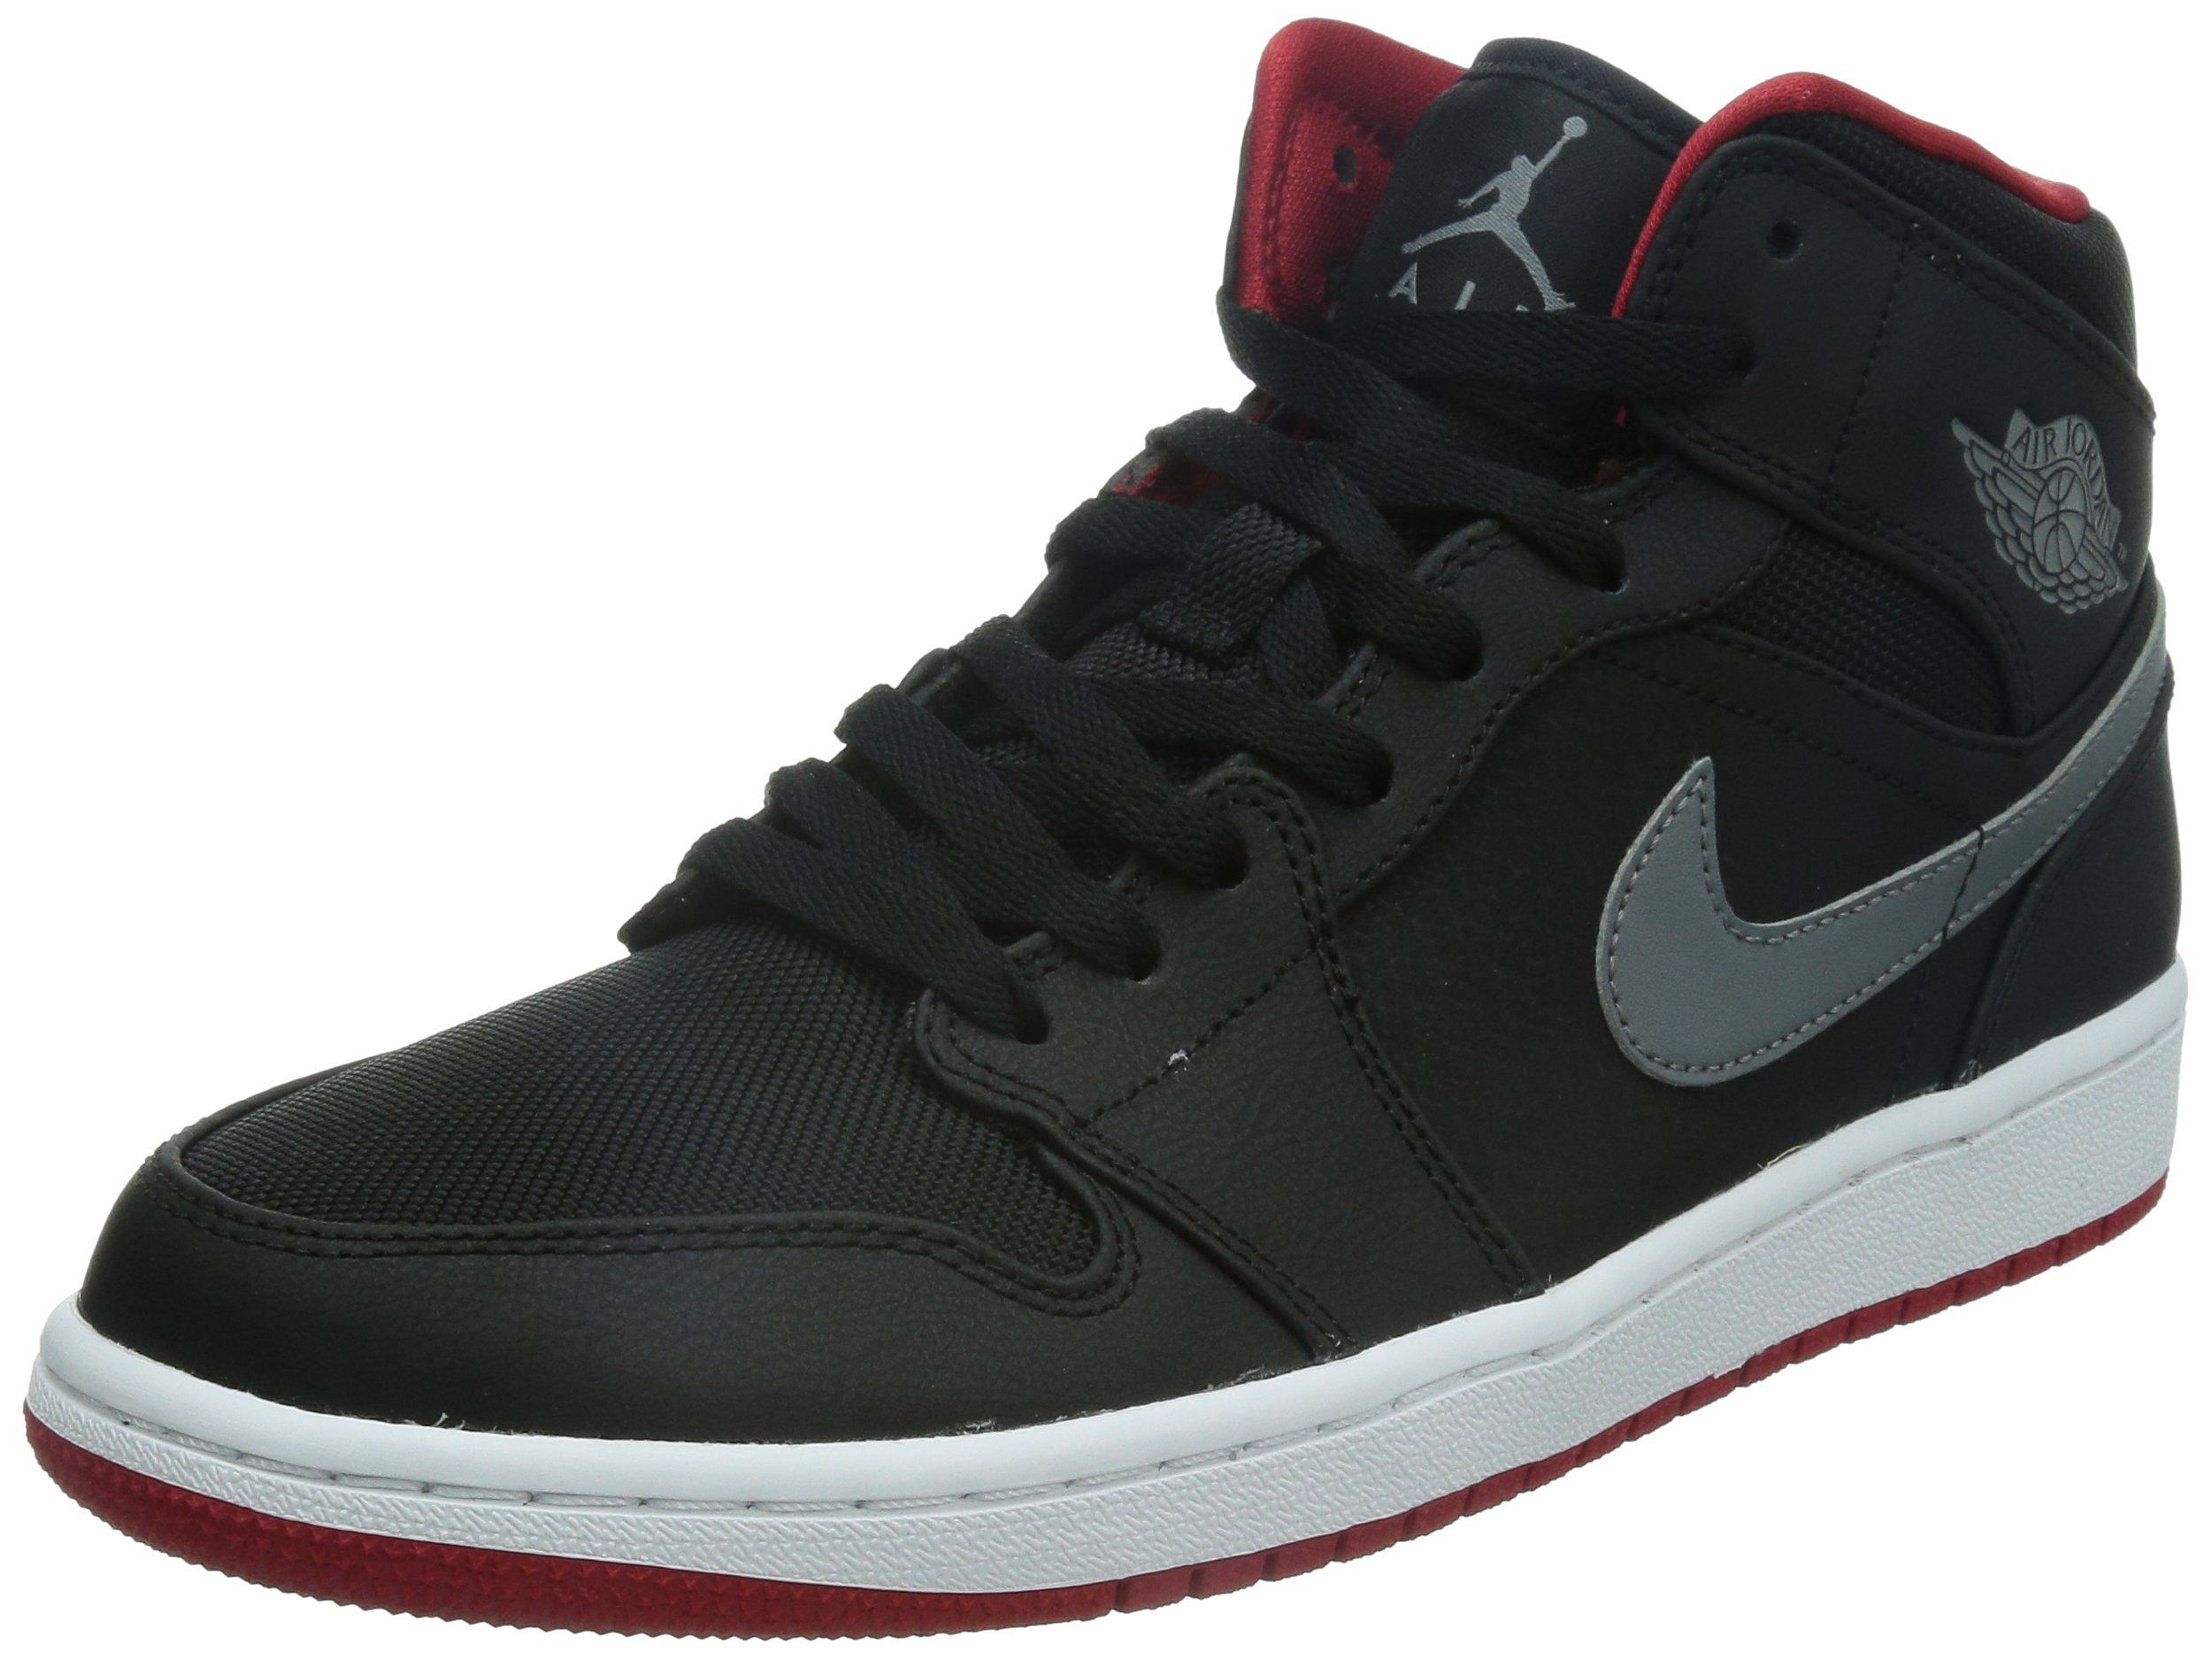 da406544be83 Nike Mens Air Jordan 1 Mid Black Cool Grey-Gym Red Synthetic Size 10.5  Basketball Shoes